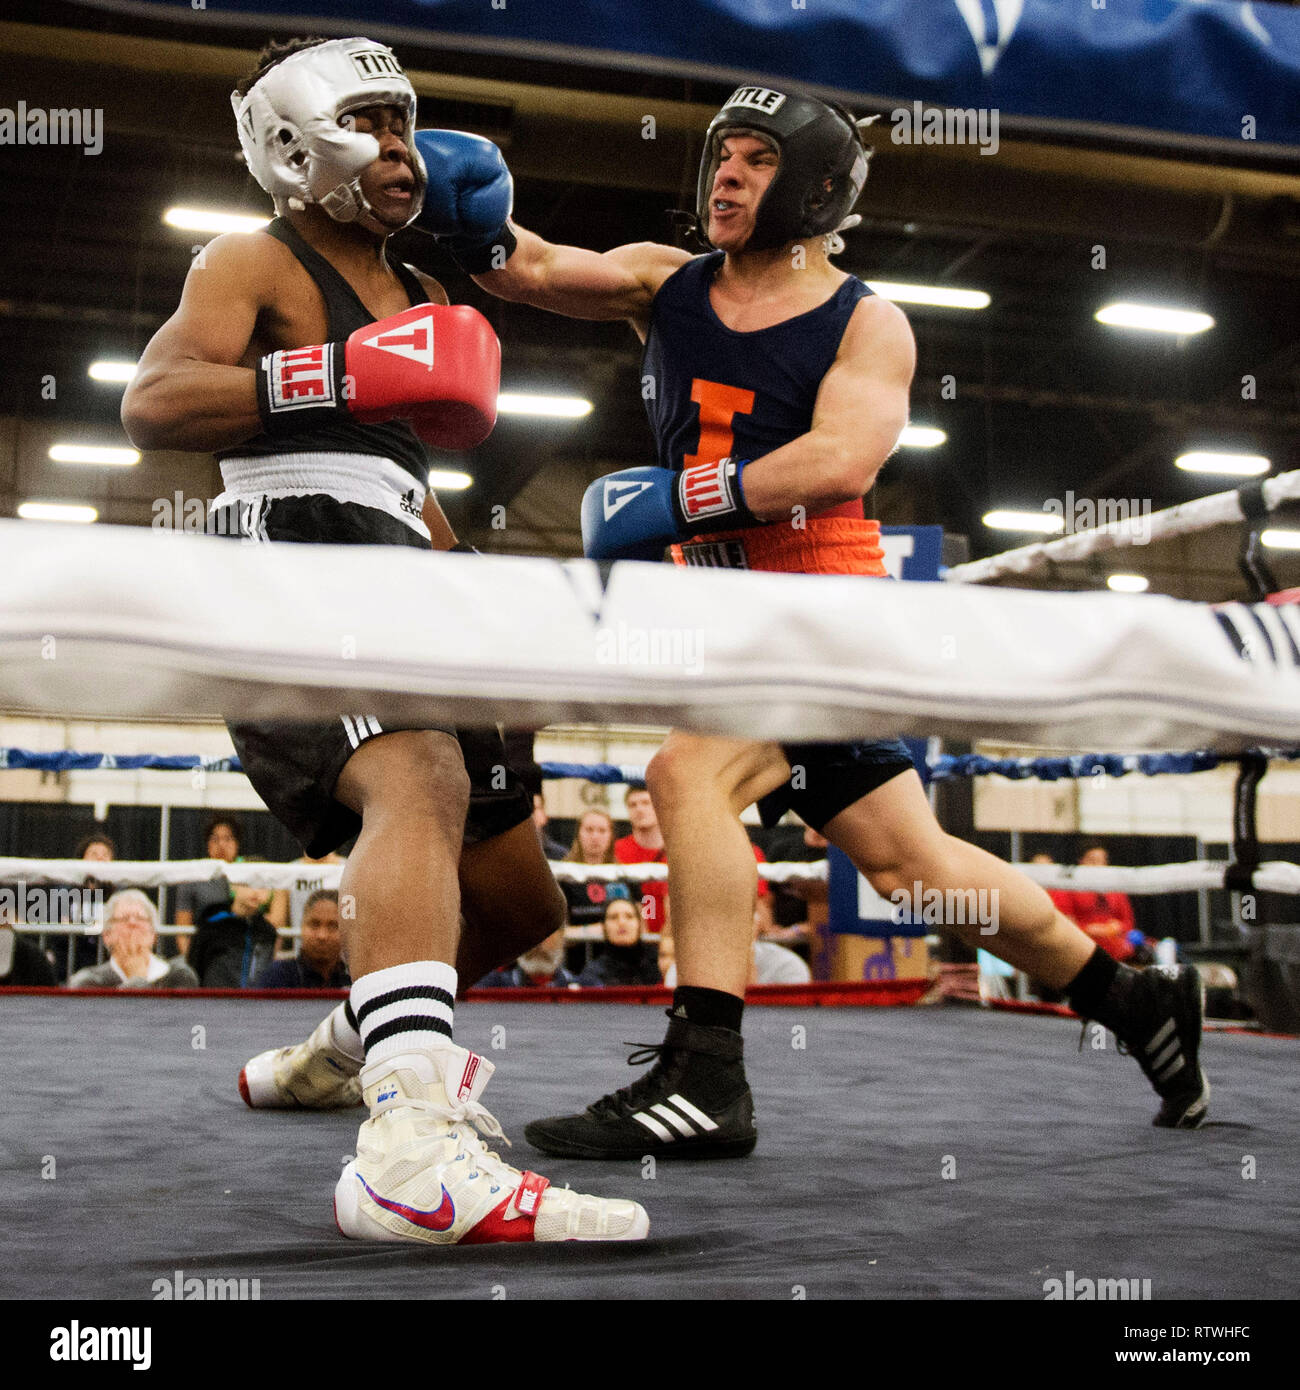 March 2, 2019: Danny Ayala of Illinois (right) connects with a right hand against Orin Pearce of Ohio State (left) in the Amateur Boxing competition at the Arnold Sports Festival in Columbus, Ohio, USA. Brent Clark/Alamy Live News Stock Photo